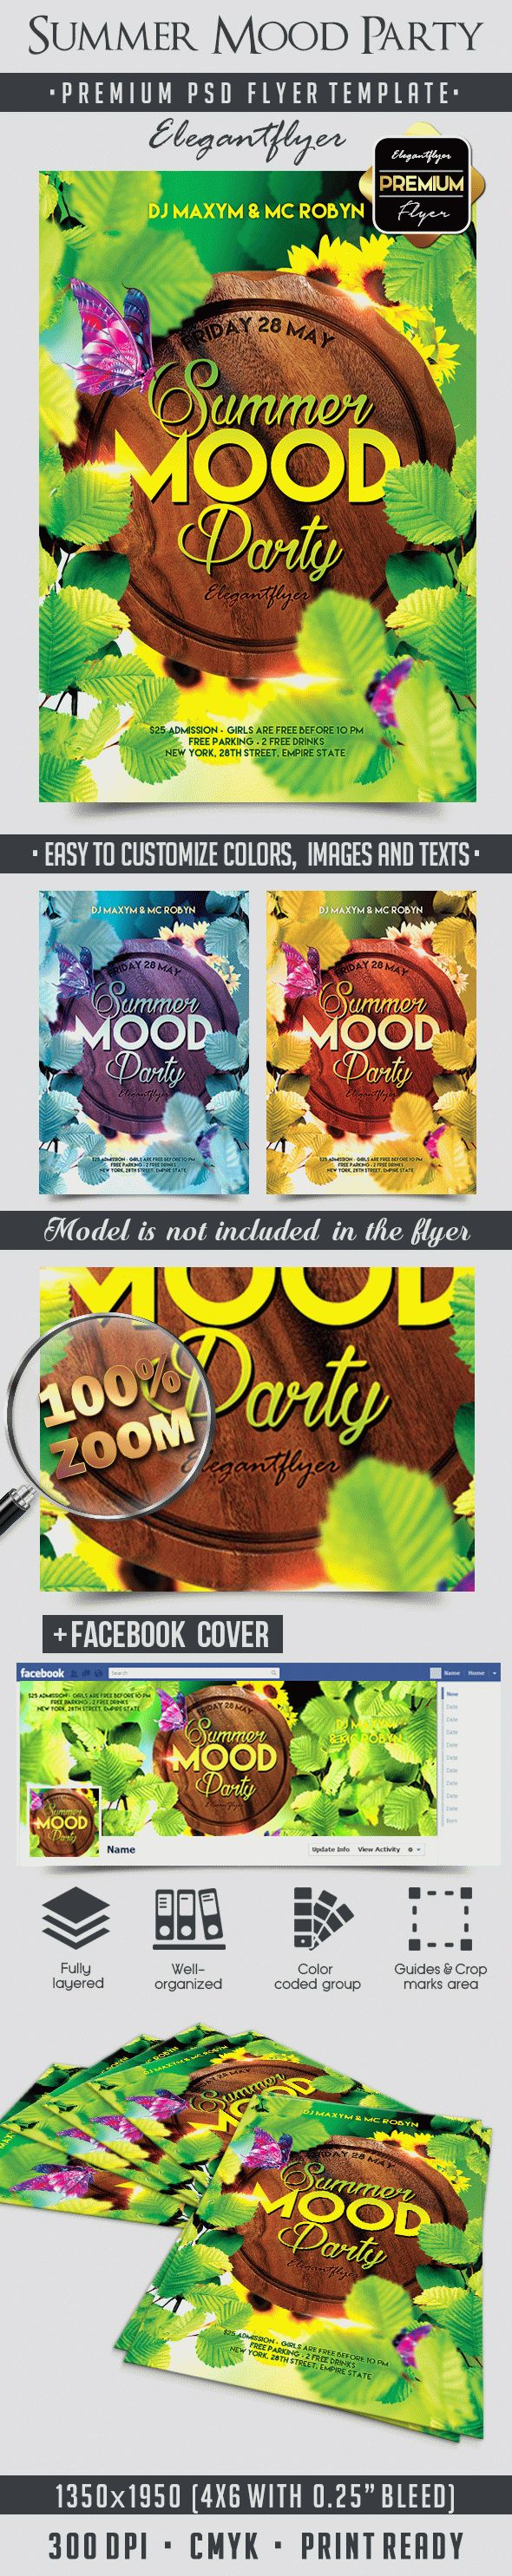 Summer Mood Party – Flyer PSD Template